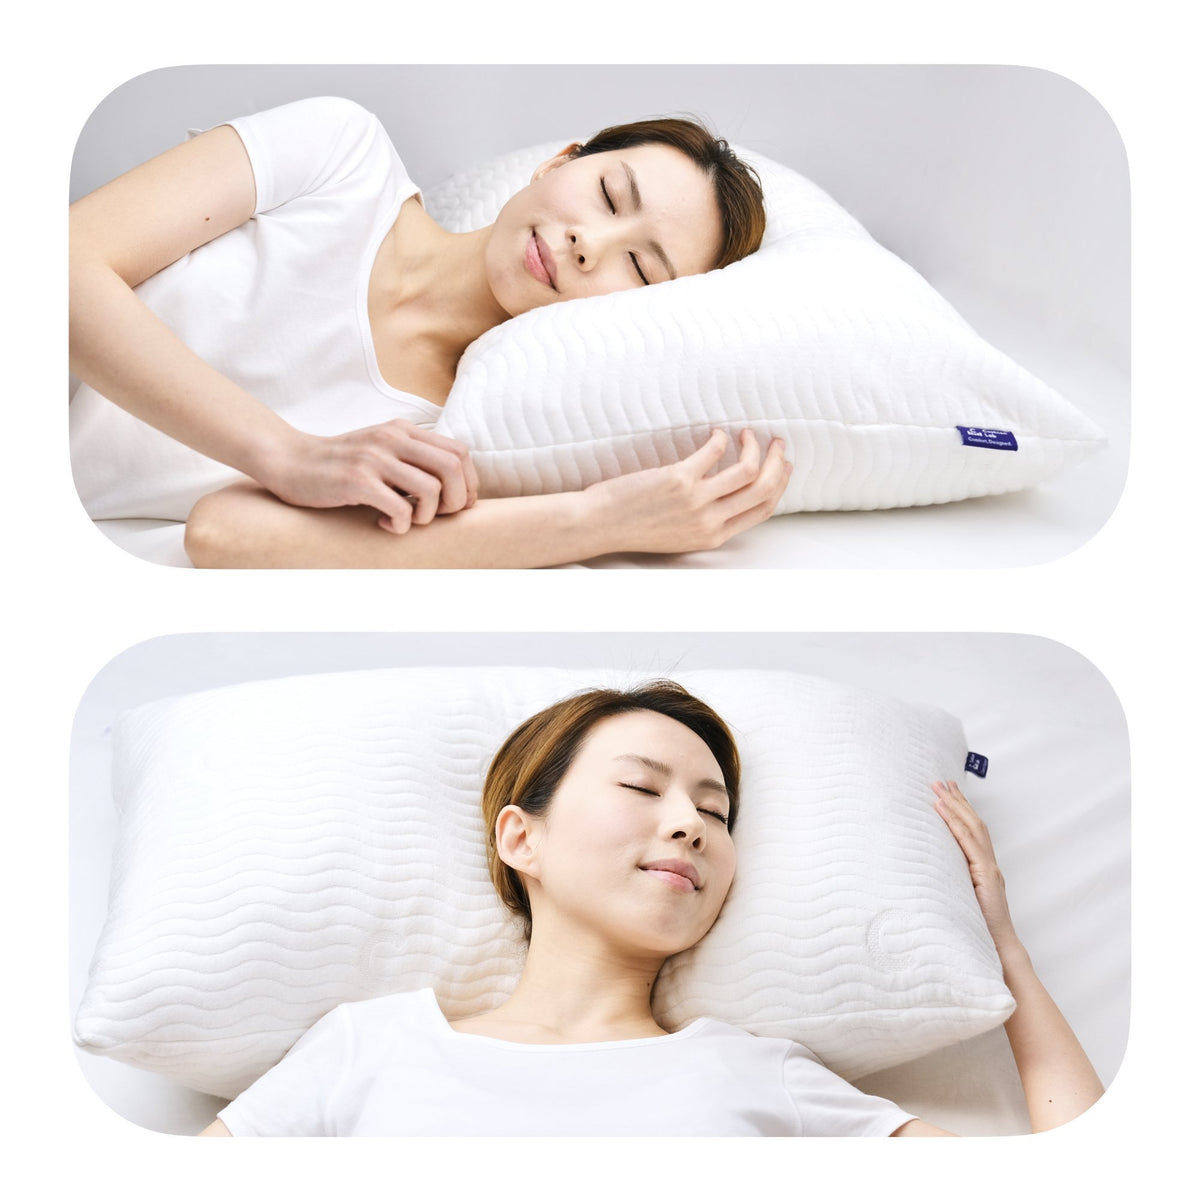 Cushion Lab Adjustable Shredded Memory Foam Pillow Different Sleeping Styles Image